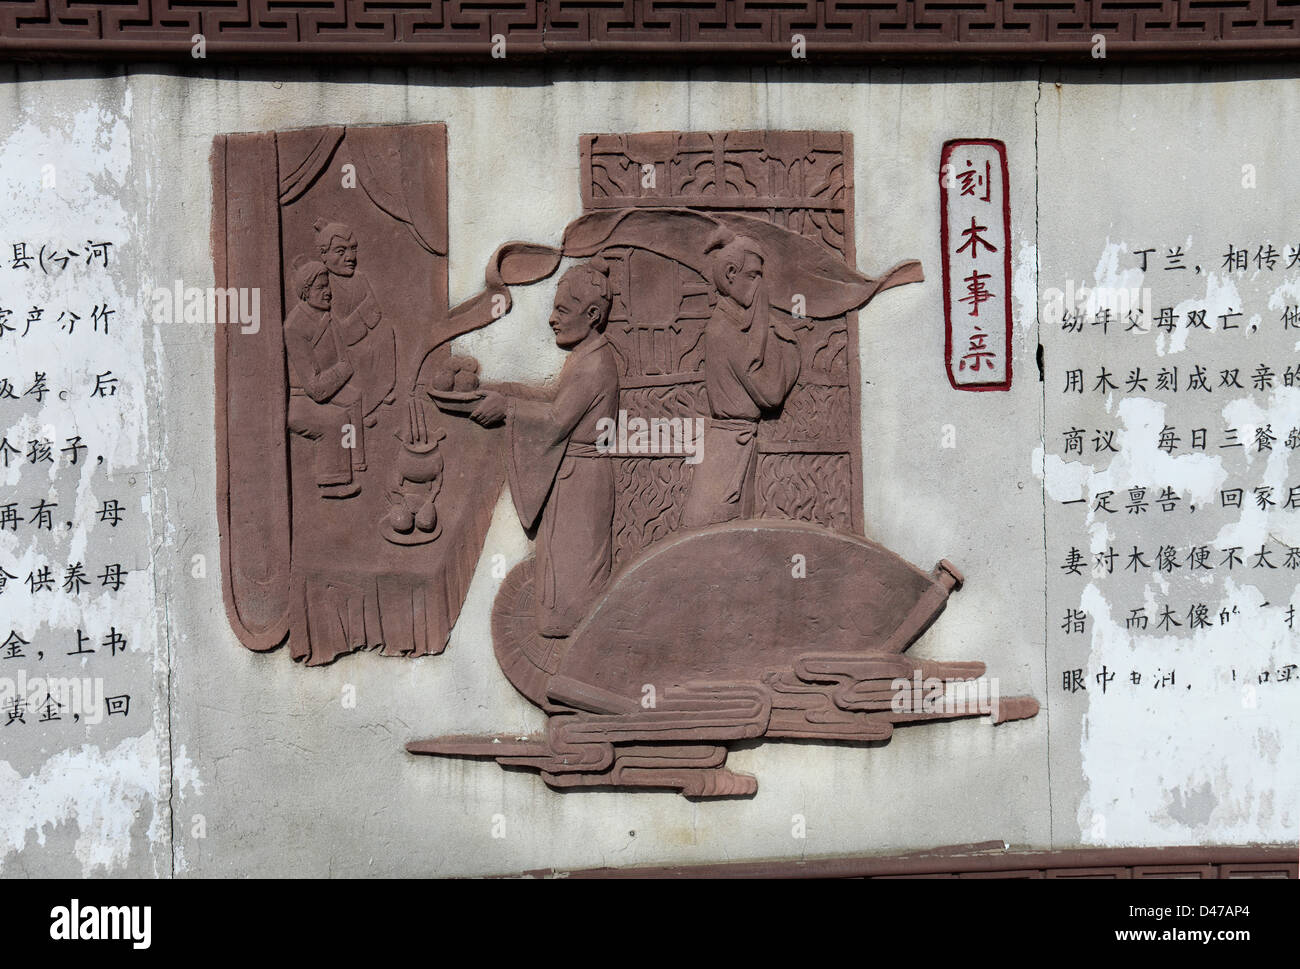 Confucius teachings on a wall, Xinying Village, Beijing Provence, China, Asia. - Stock Image